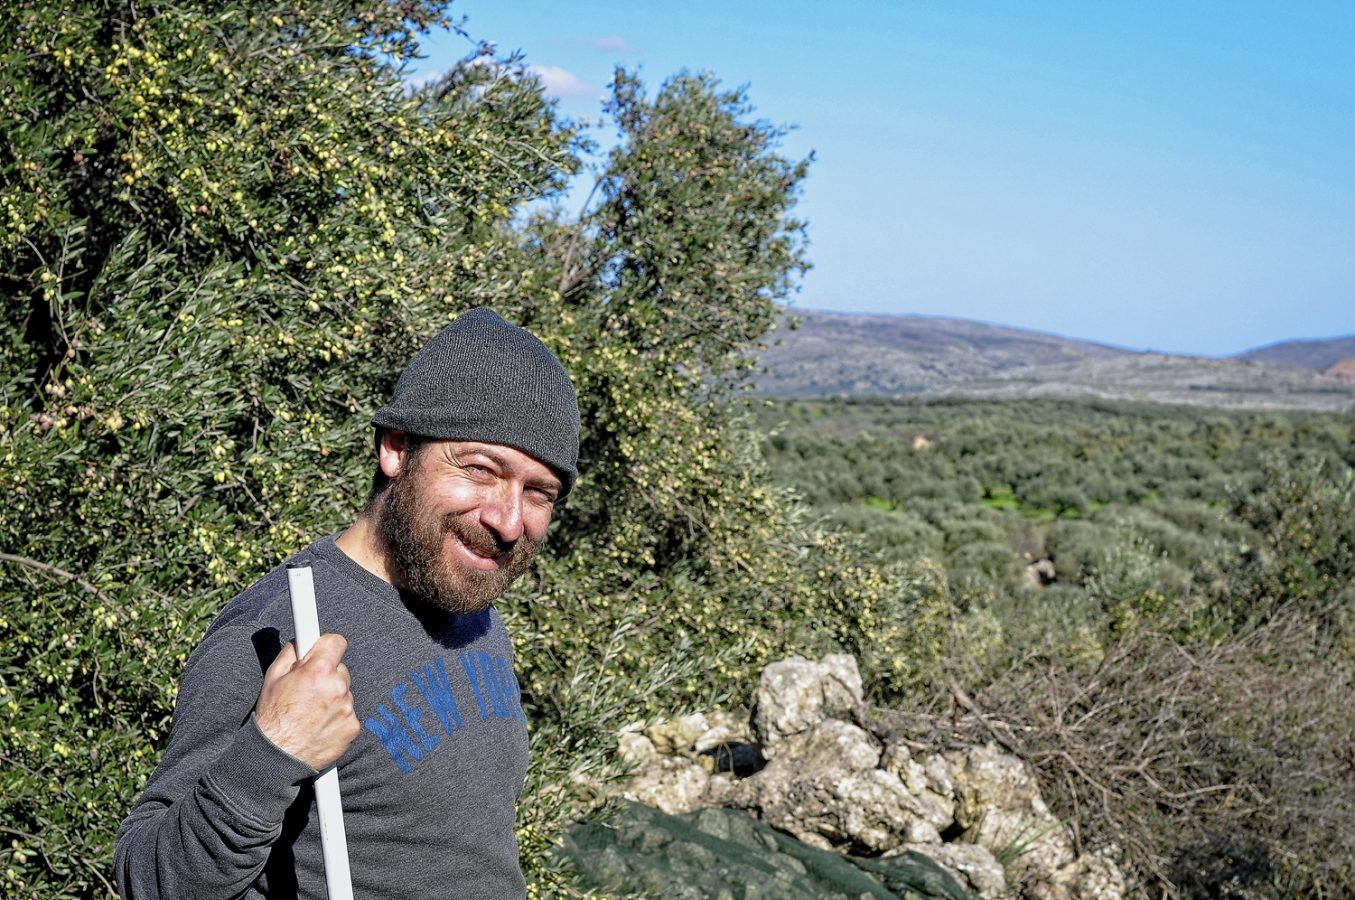 Stelios Kanakis on a chill November afternoon in the groves at Galatas